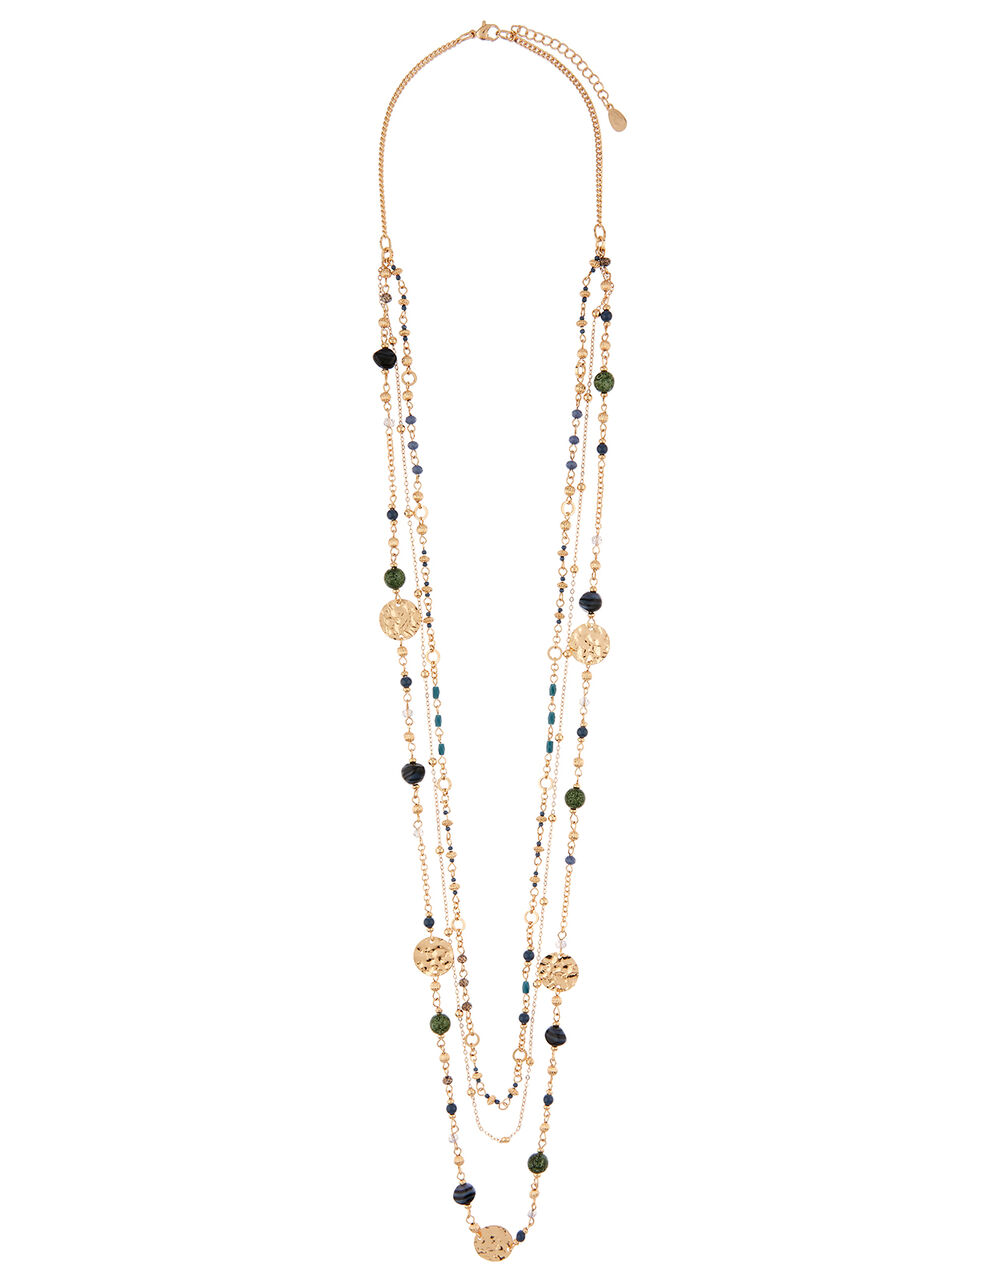 Stone And Coin Layered Necklace, , large